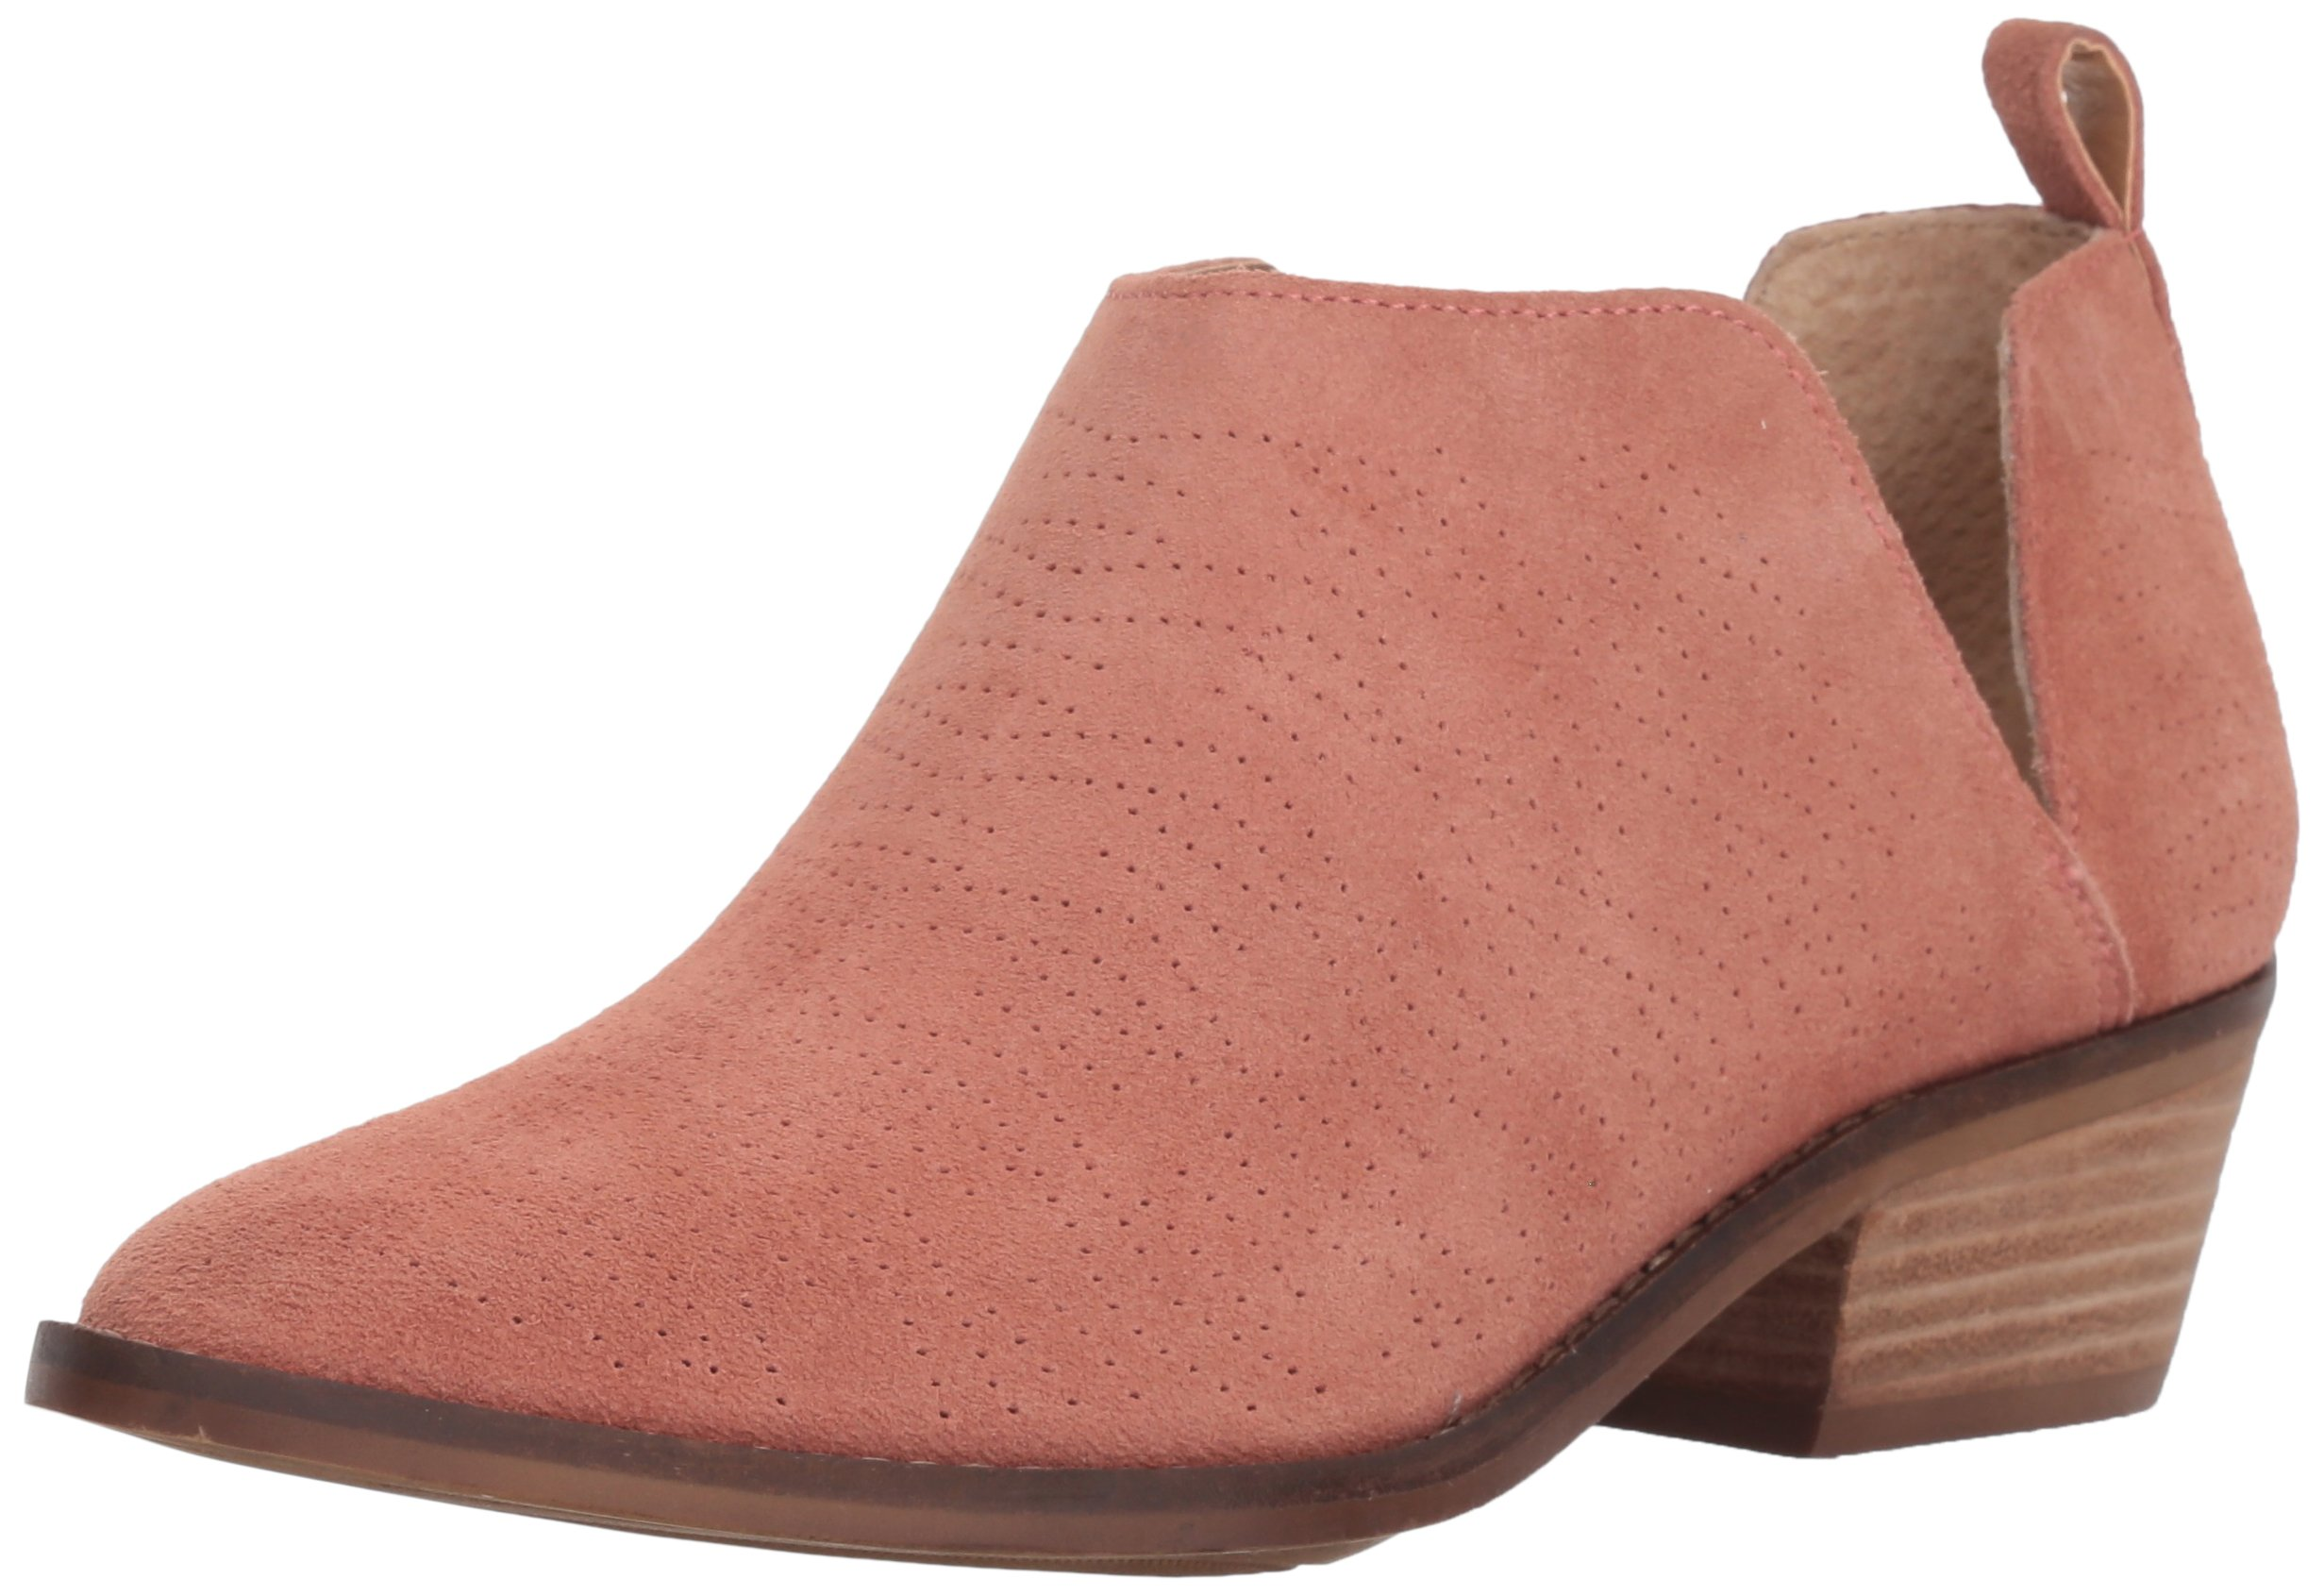 Lucky Brand Women's Fayth Ankle Boot, Canyon Rose, 8 M US by Lucky Brand (Image #1)